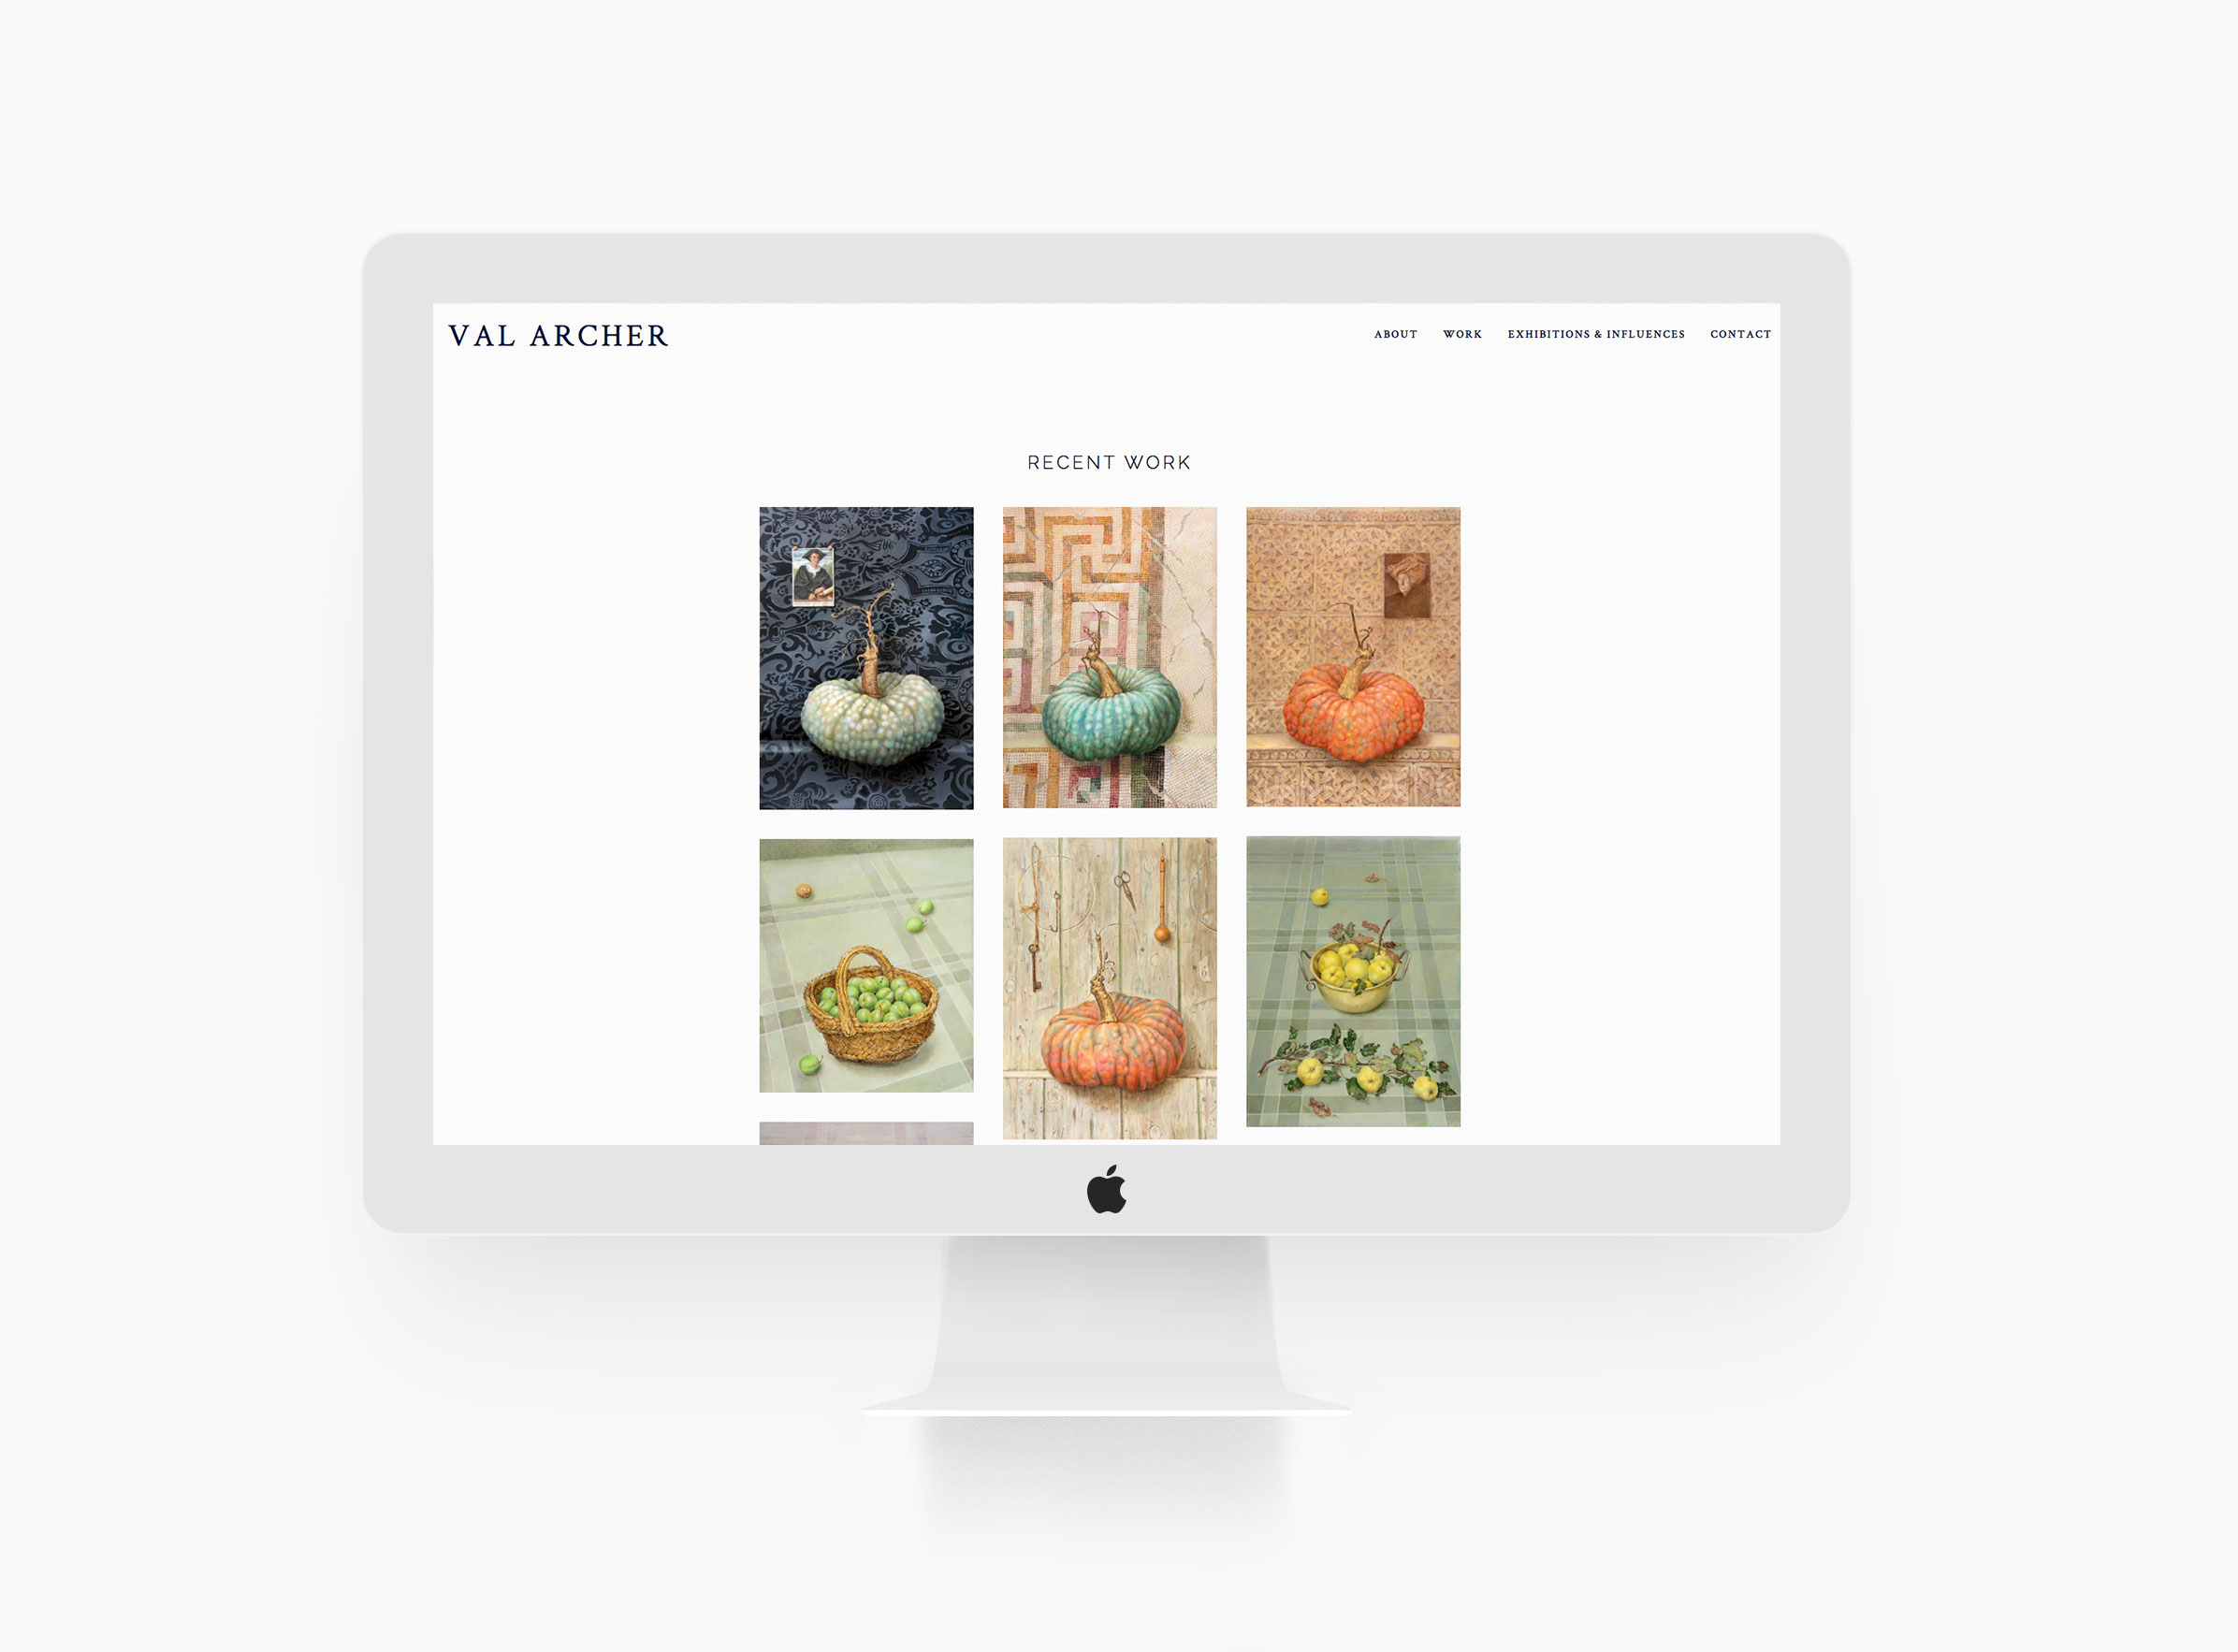 Website-Design-for-Artists-and-Creatives-by-Hanna-Sorrell_Val-Archer-work.jpg